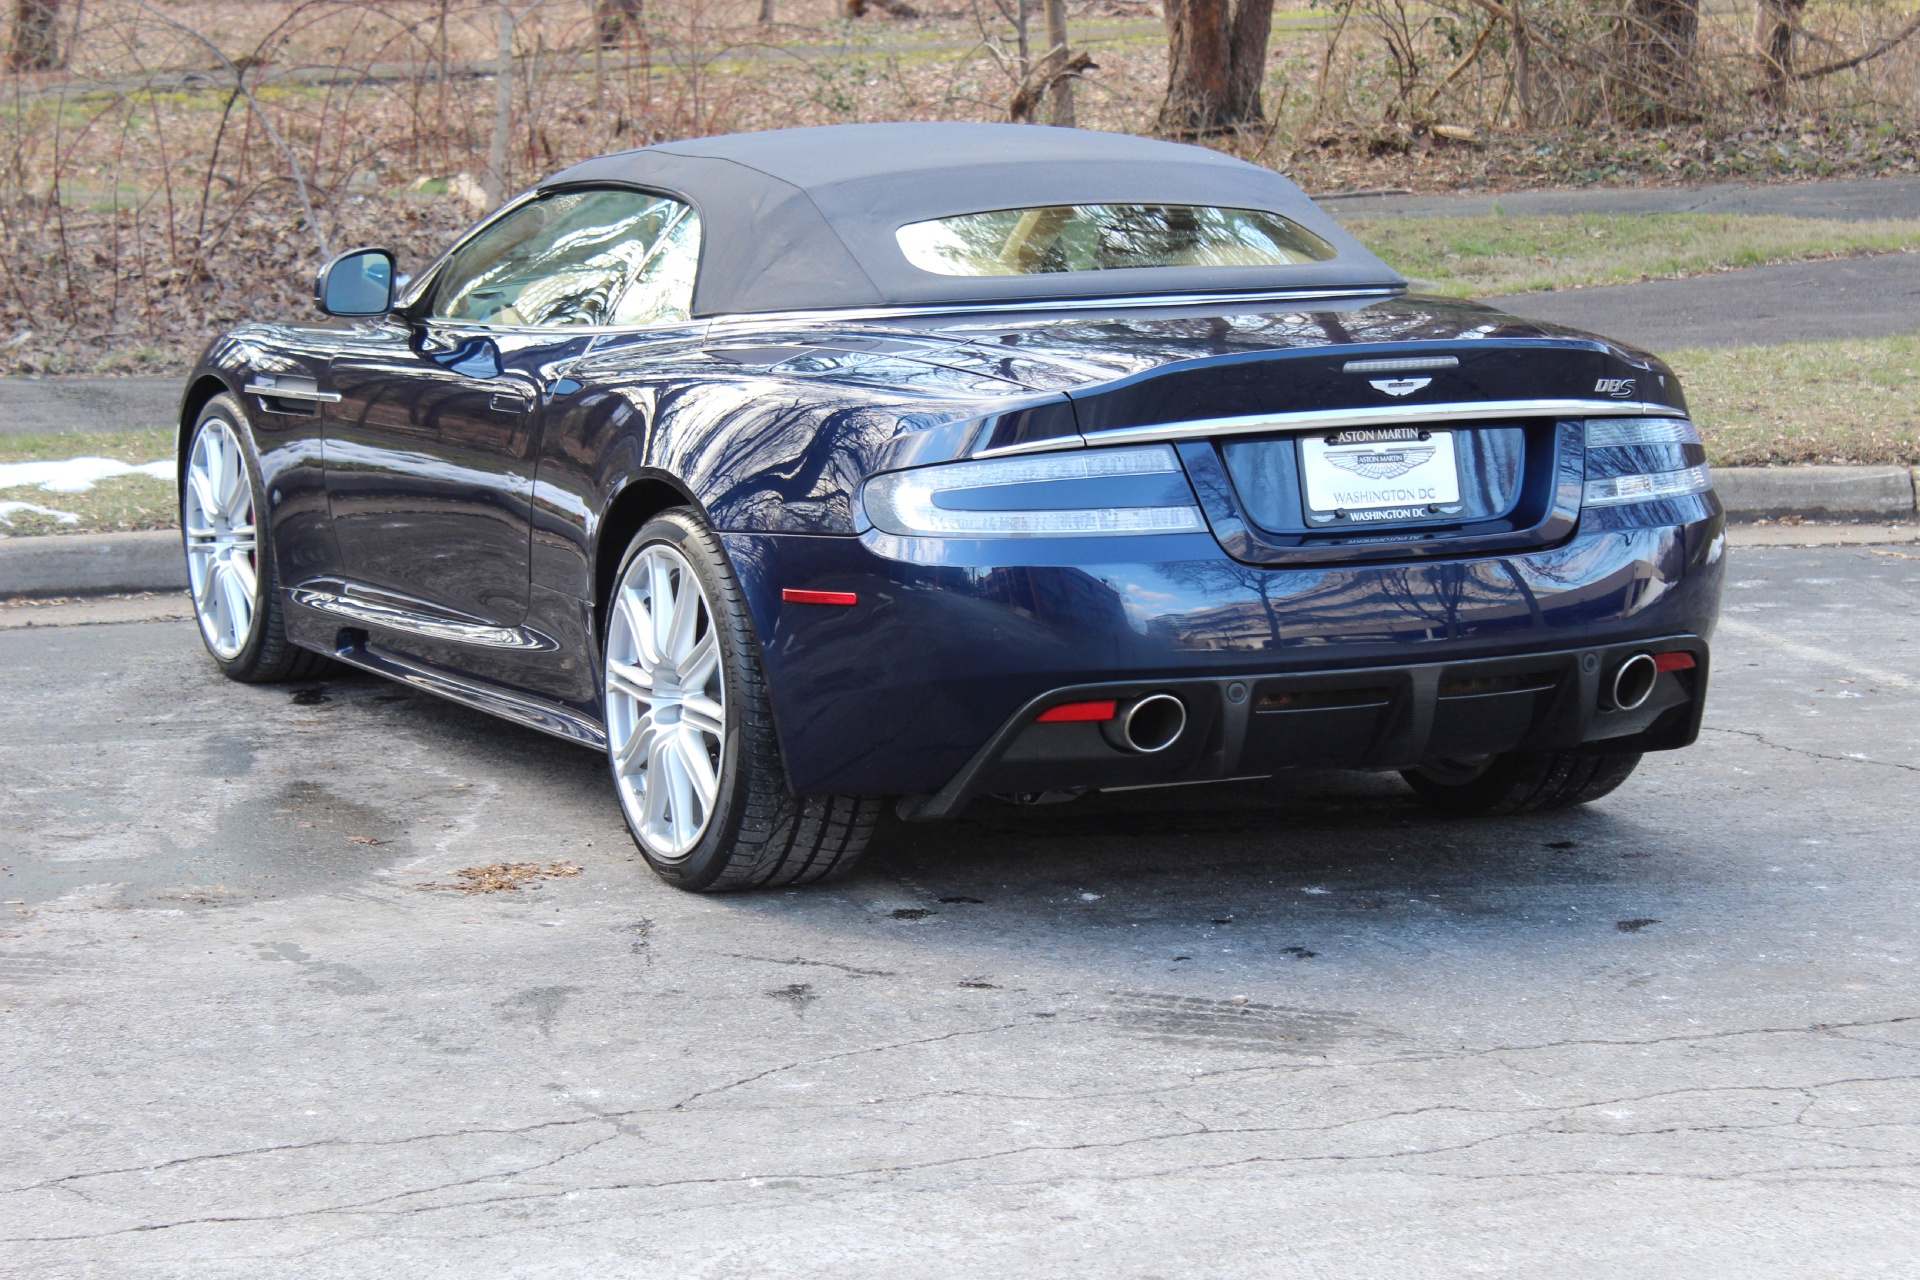 Aston Martin DBS Volante Volante Stock PE For Sale Near - Aston martin washington dc